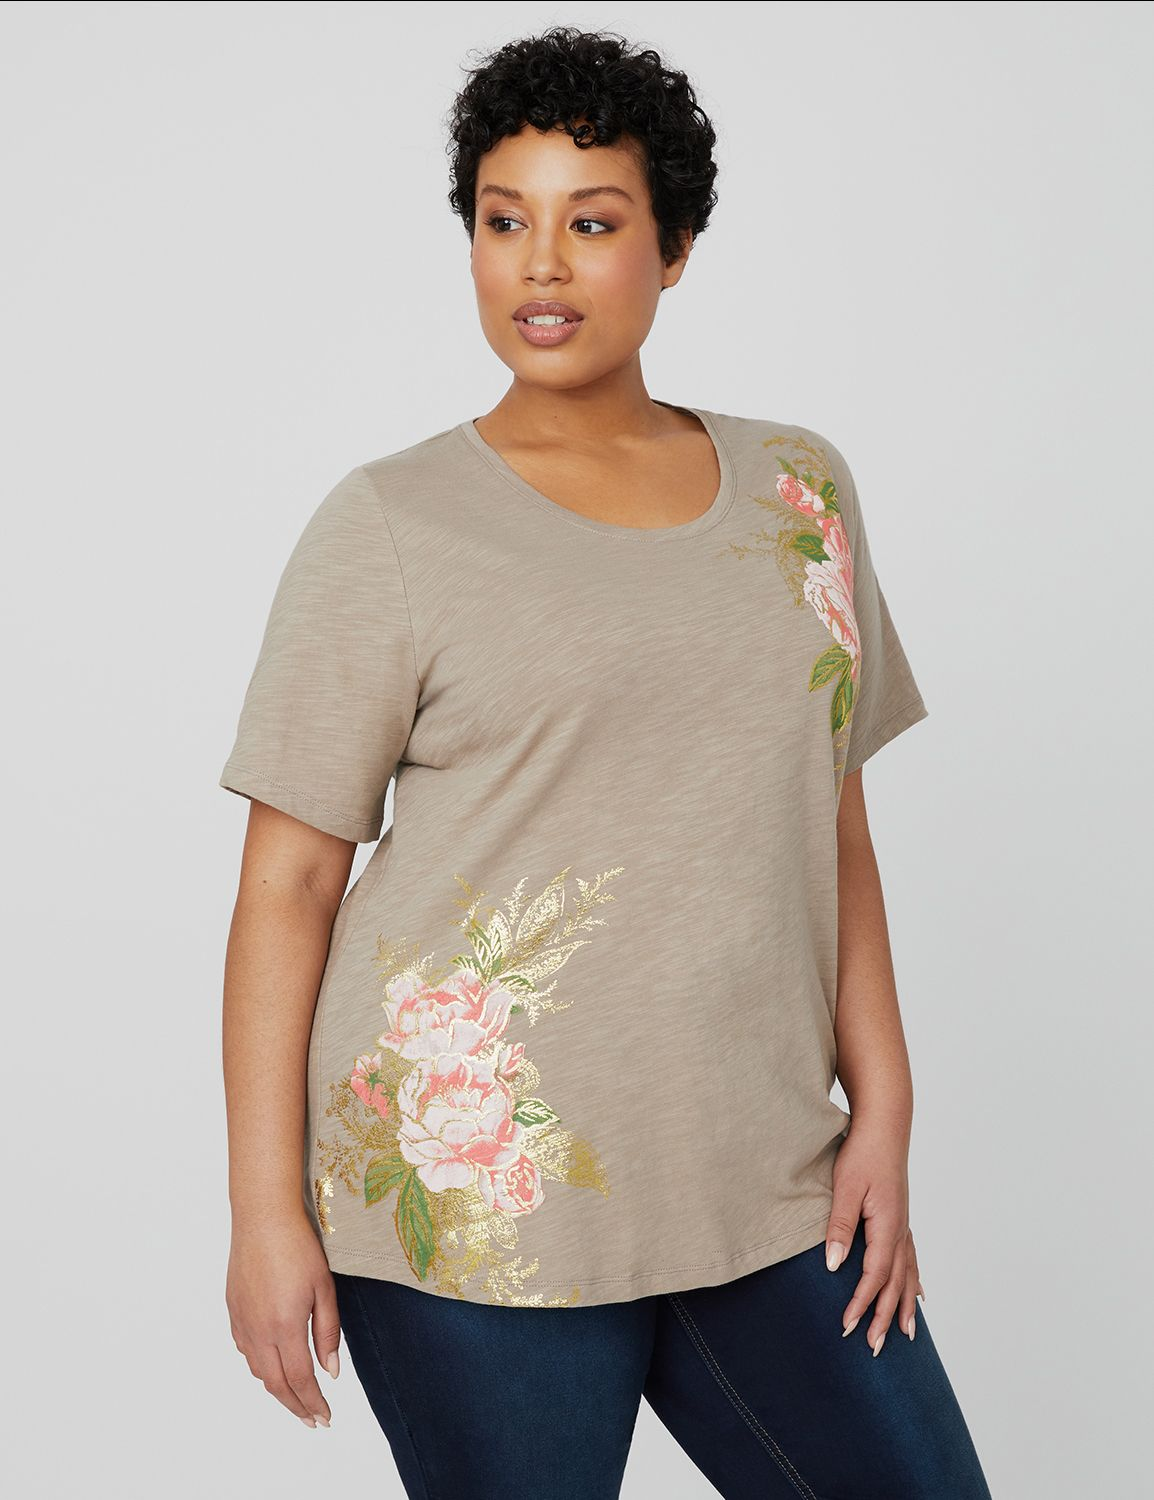 Tranquil Floral Tee 1088365 FLORAL SCREEN MP-300105269